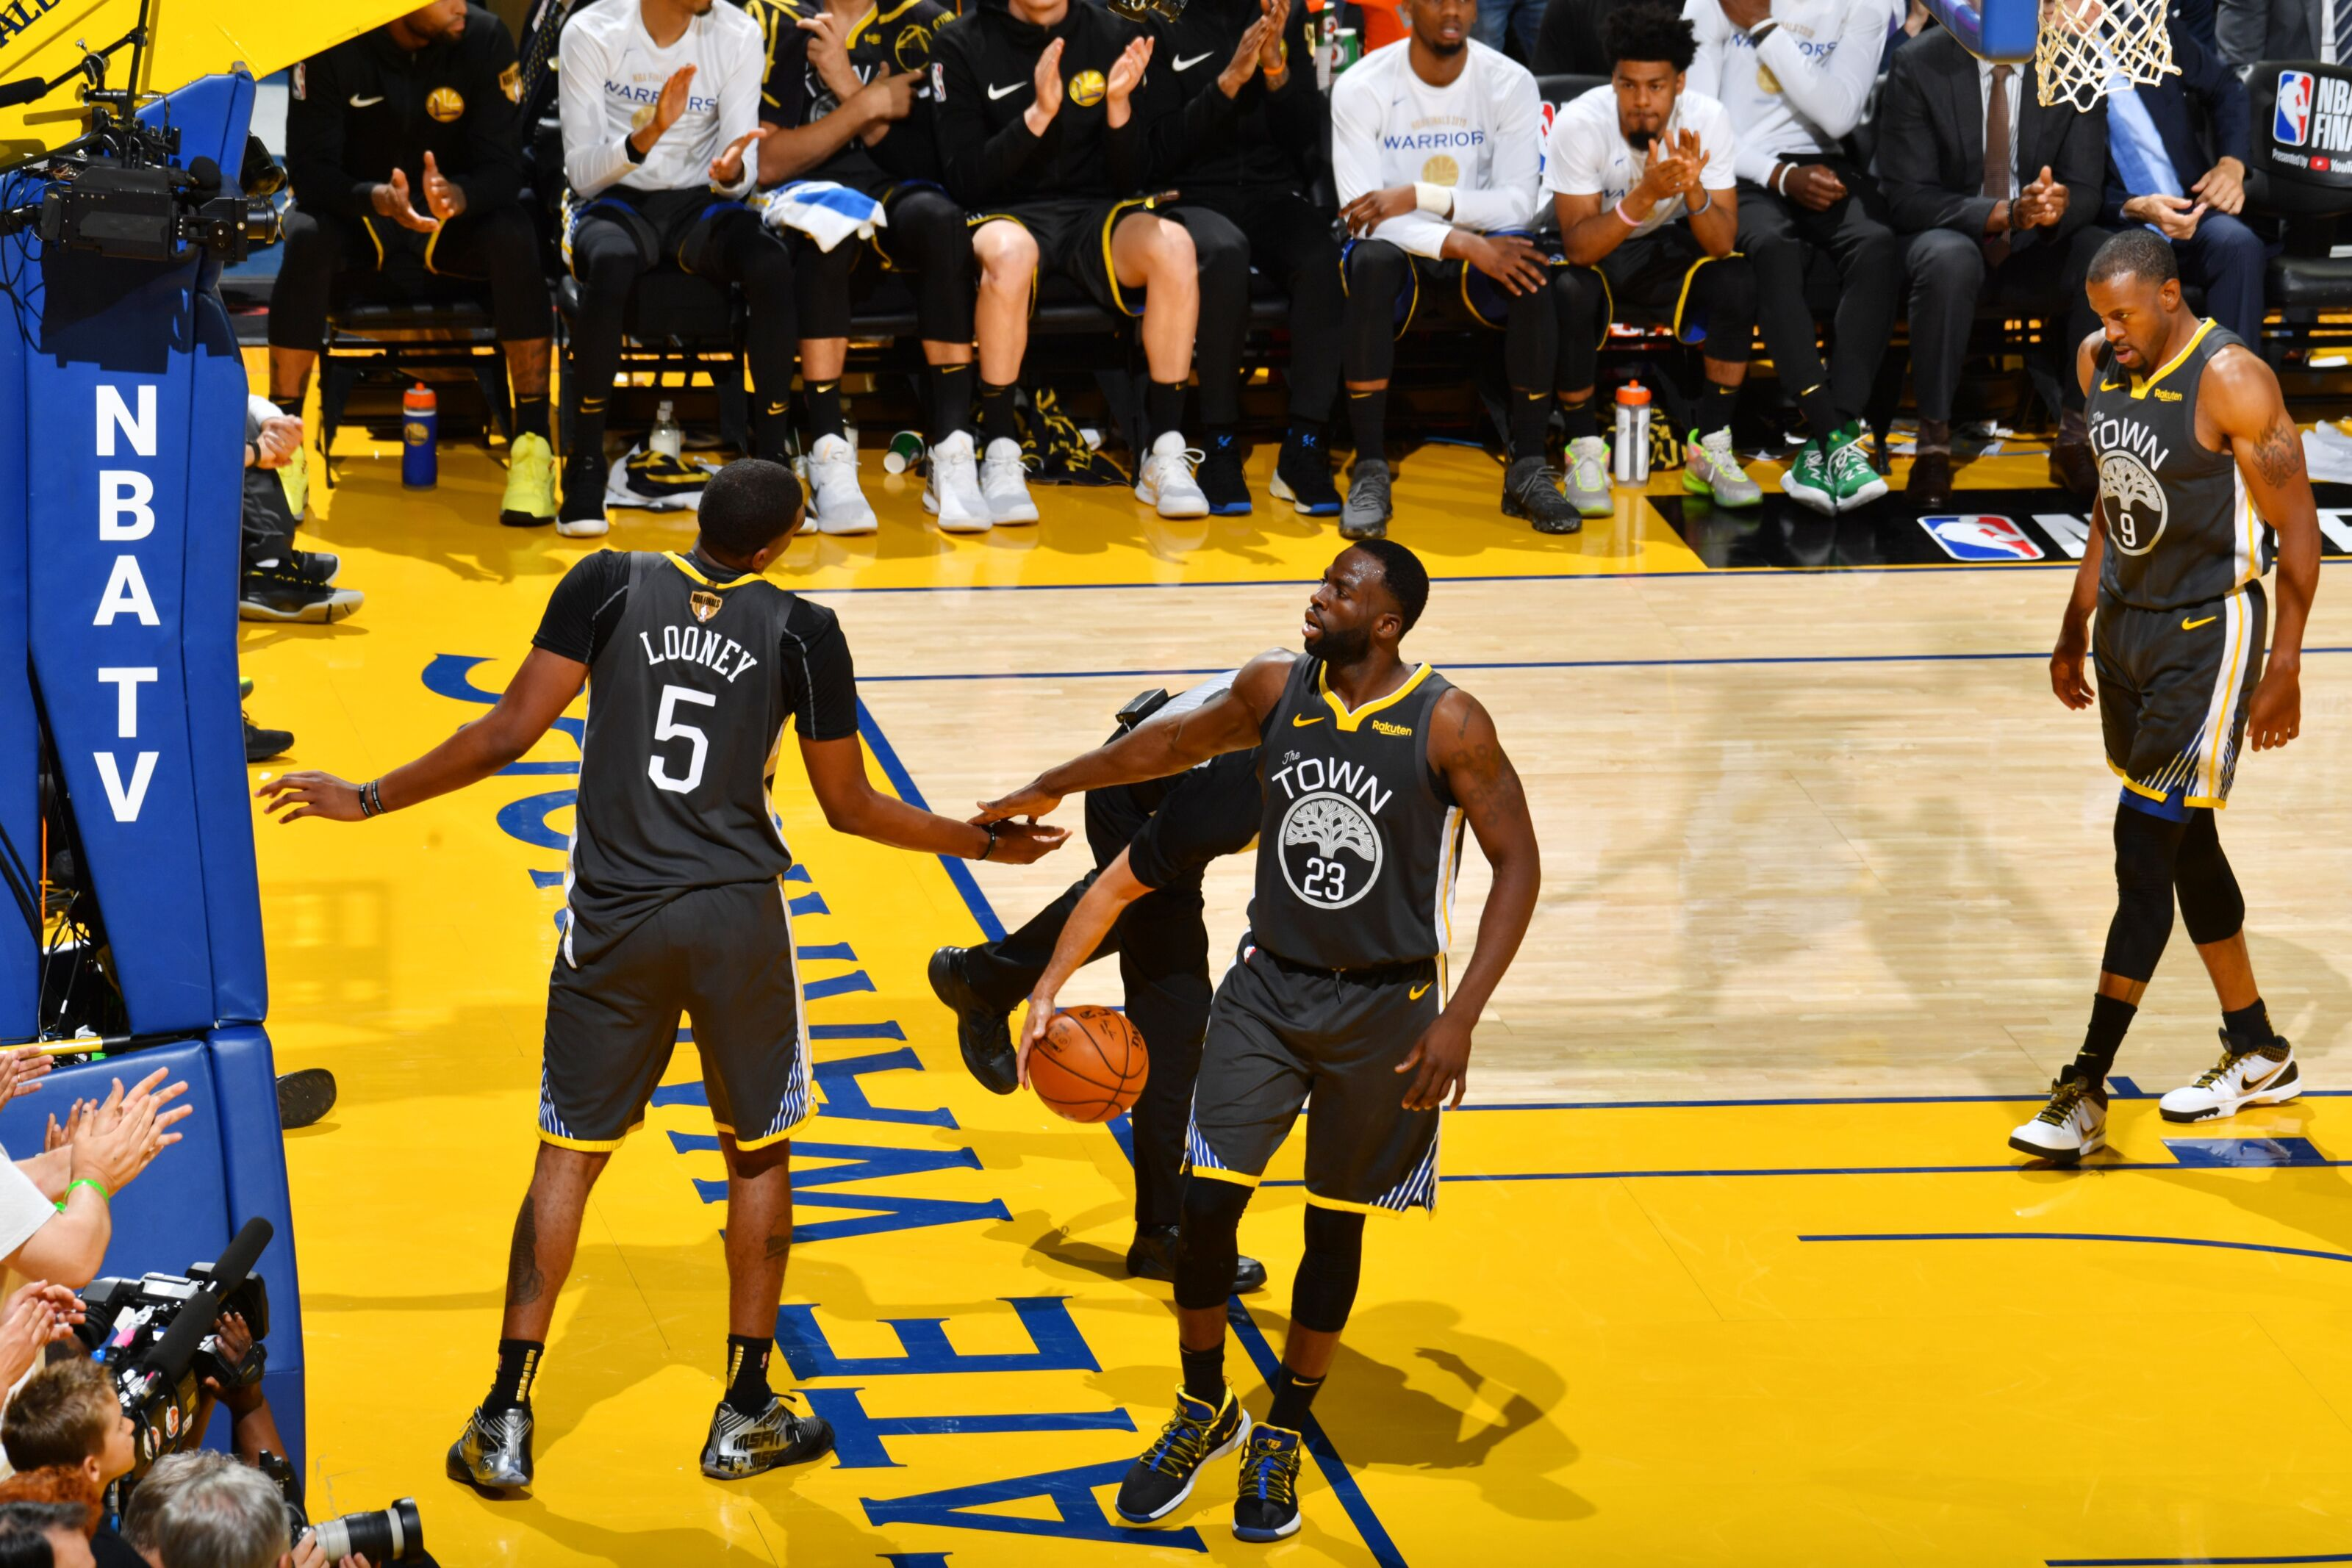 Golden State Warriors will struggle without a rim protector